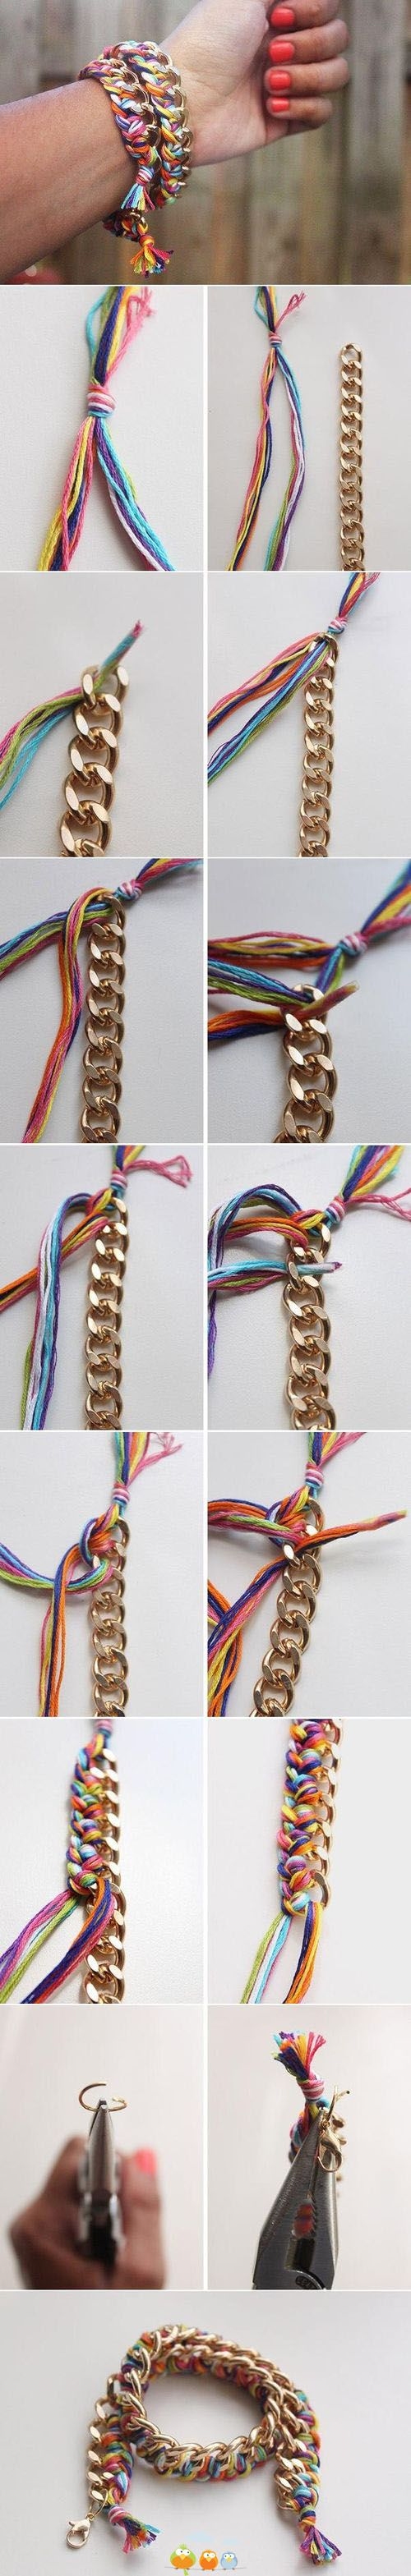 DIY summer bracelet with thick gold chain and a variety of thread colors